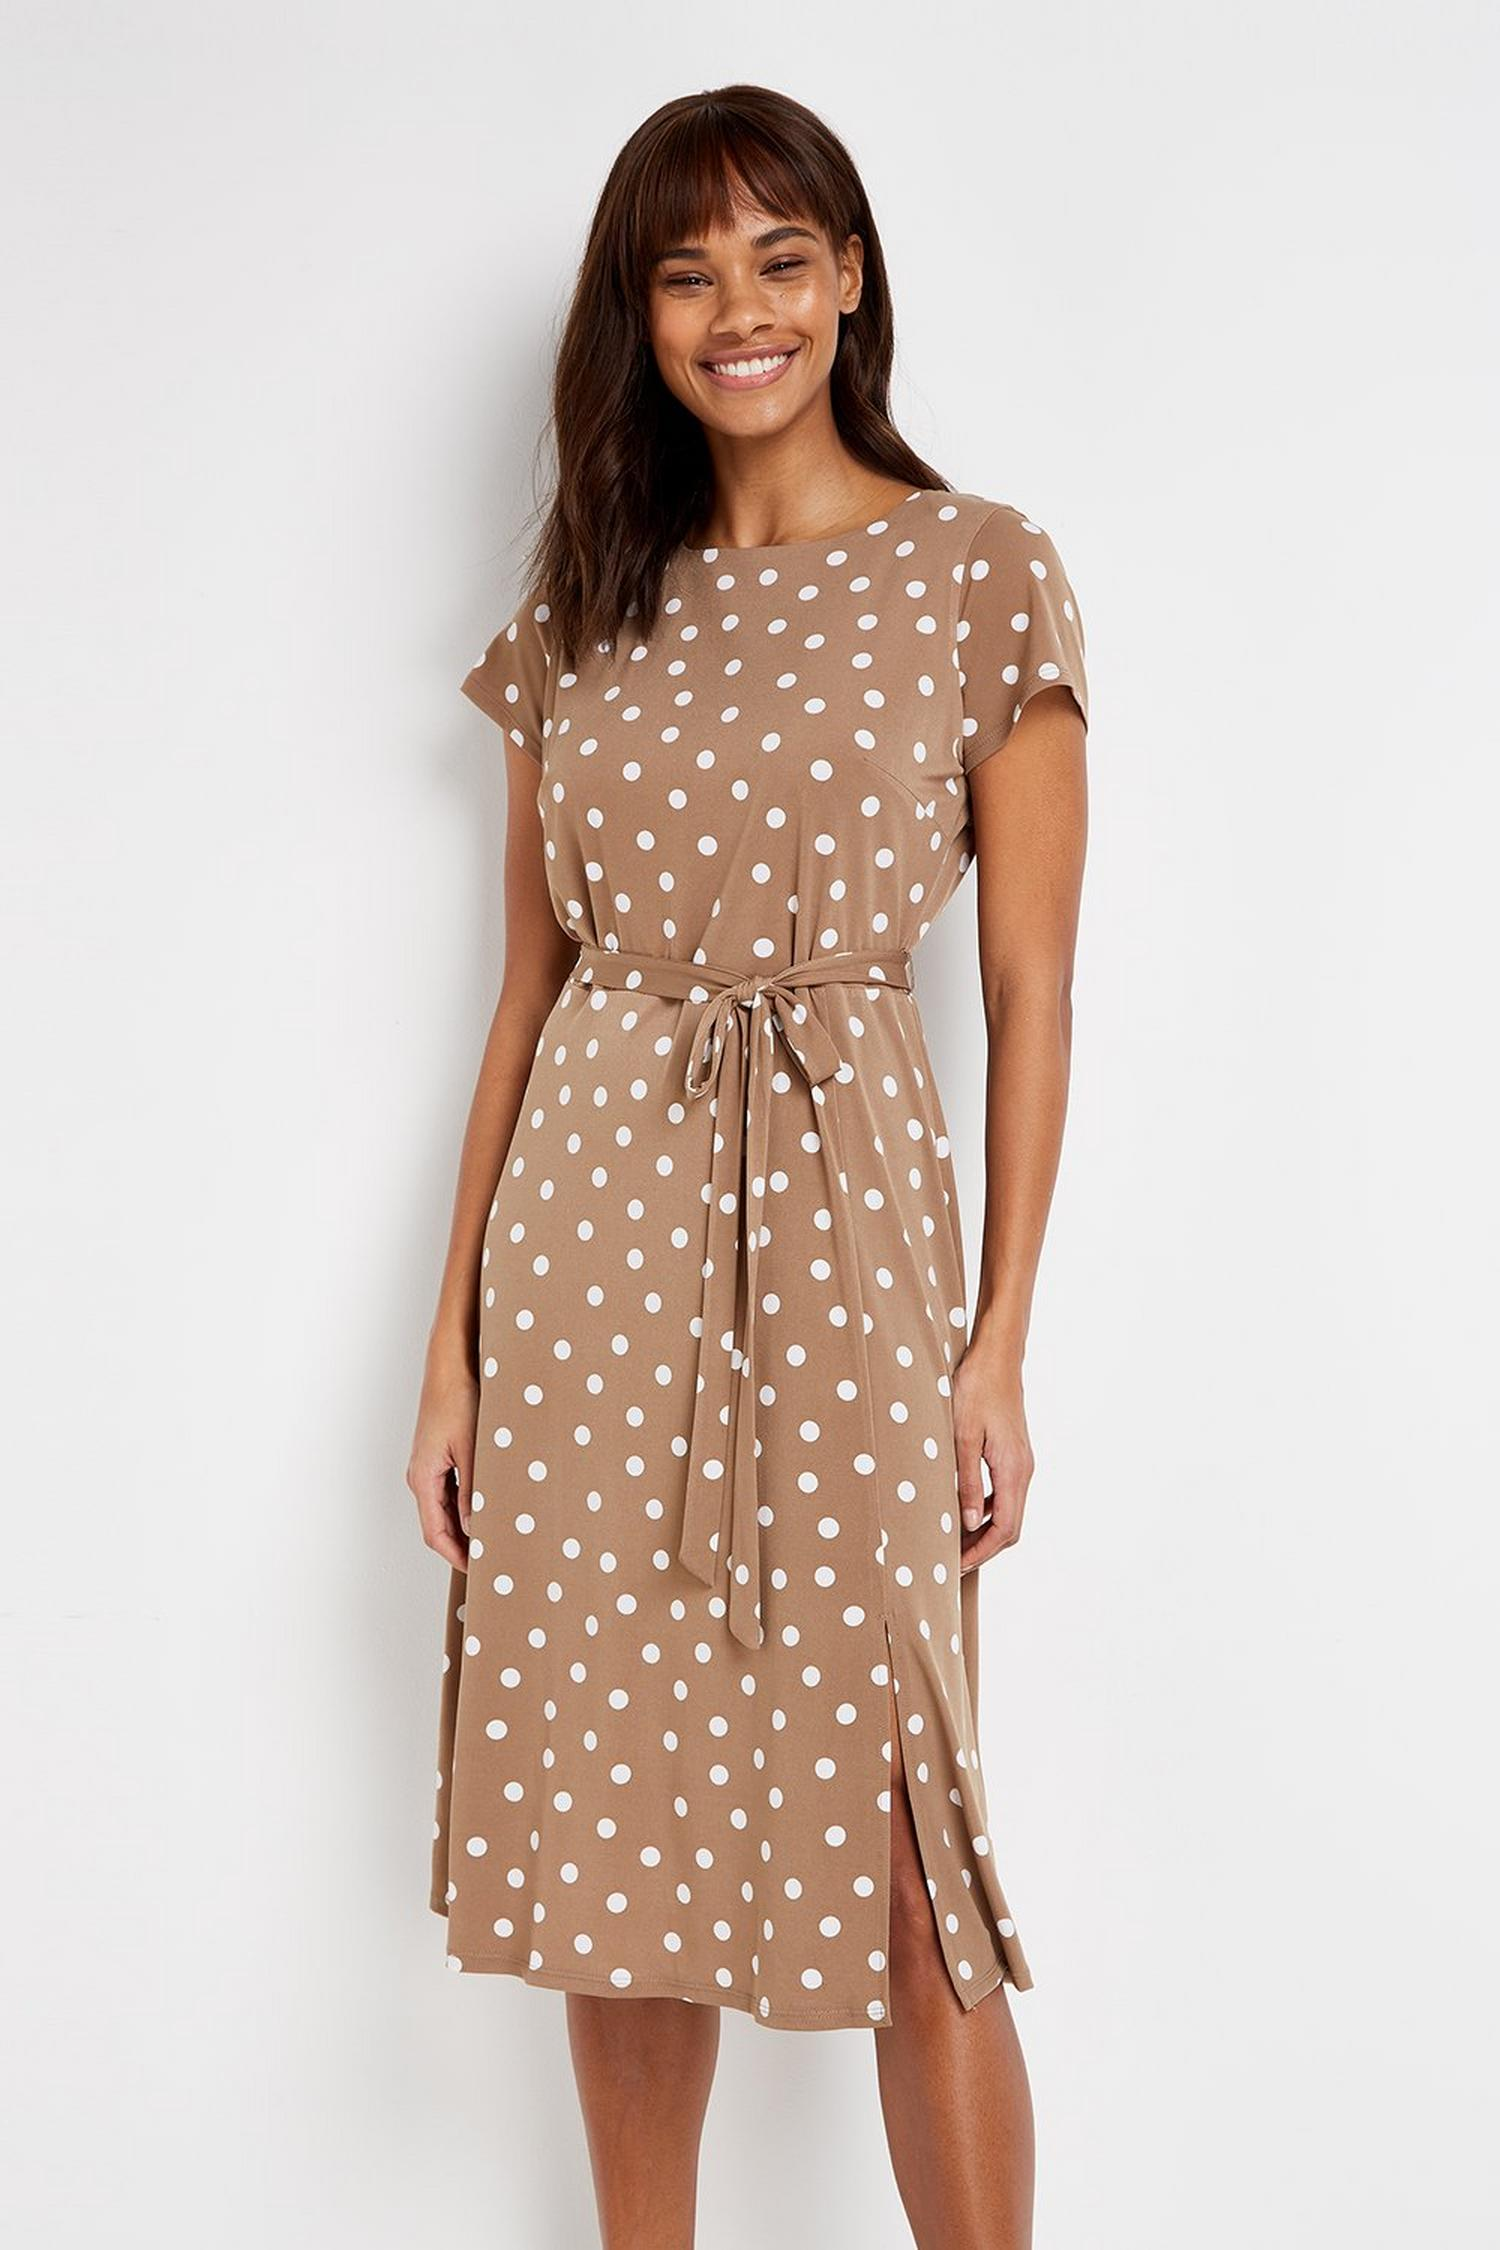 103 Taupe Polka Dot Dress image number 3